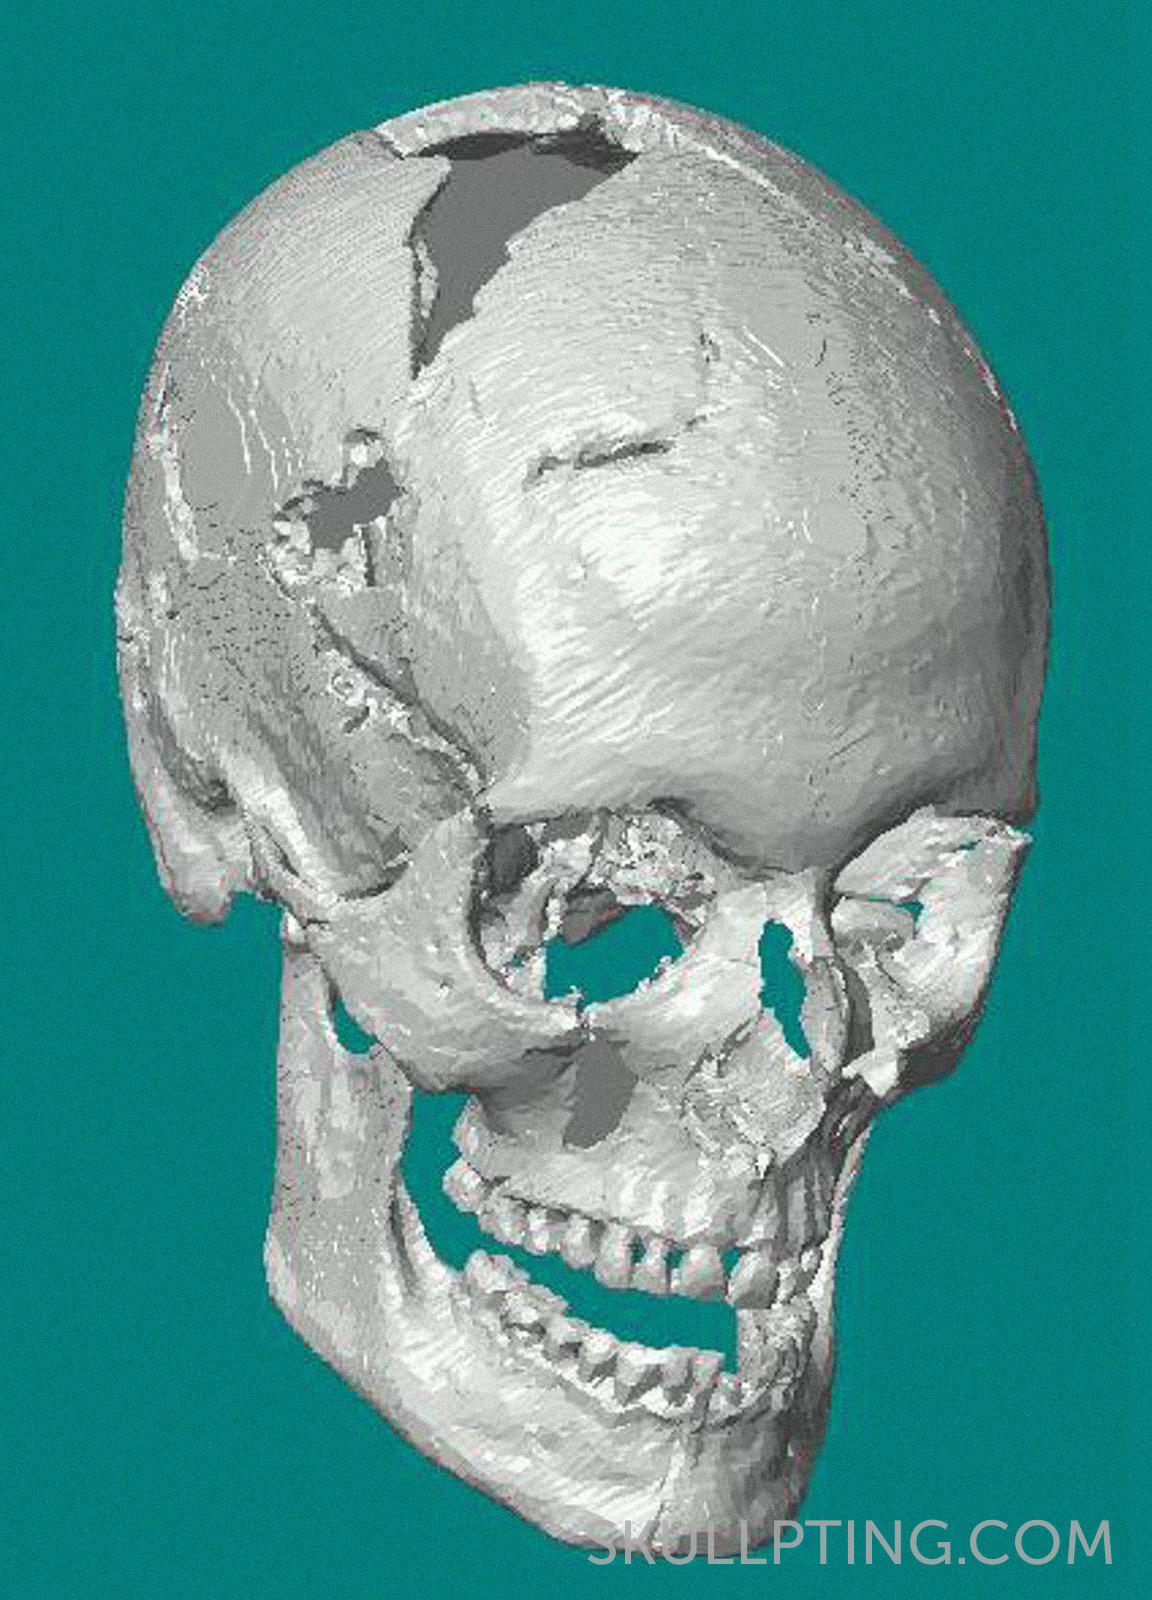 Her virtual skull after CT-scanning.